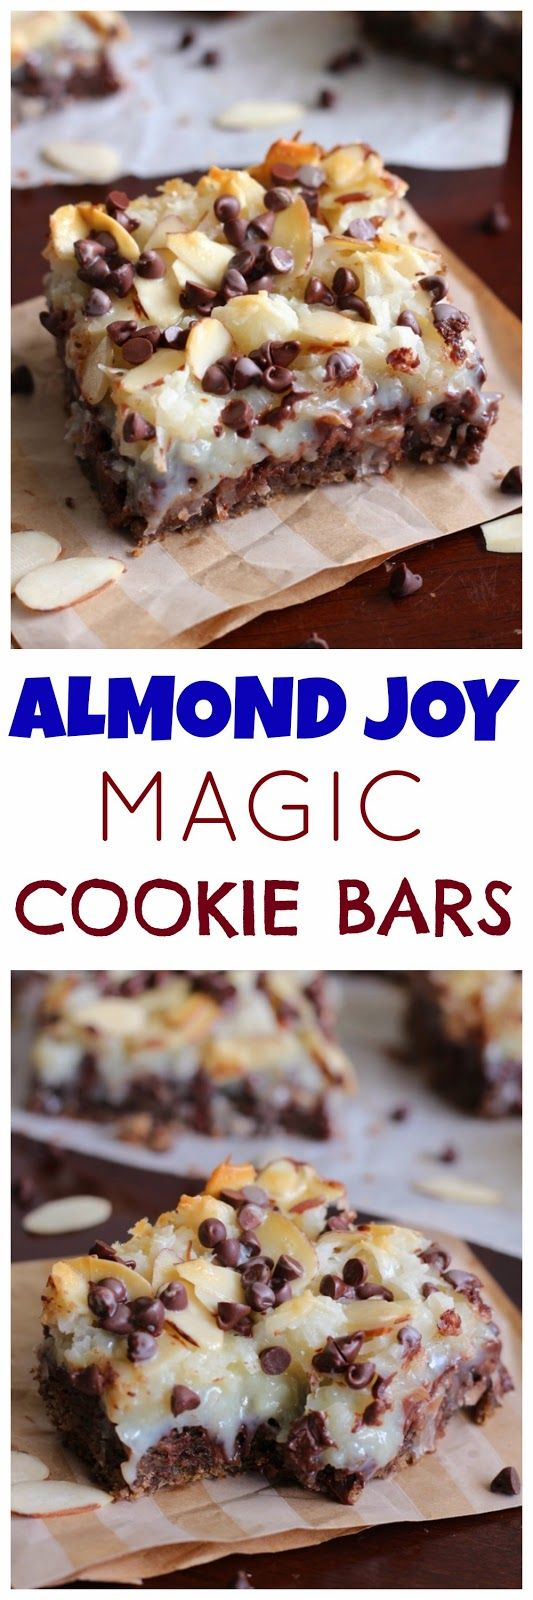 Almond Joy Magic Cookie Bars - Chewy chocolate graham cracker cookie crust topped with ooey gooey coconut, almonds and chocolate chips.